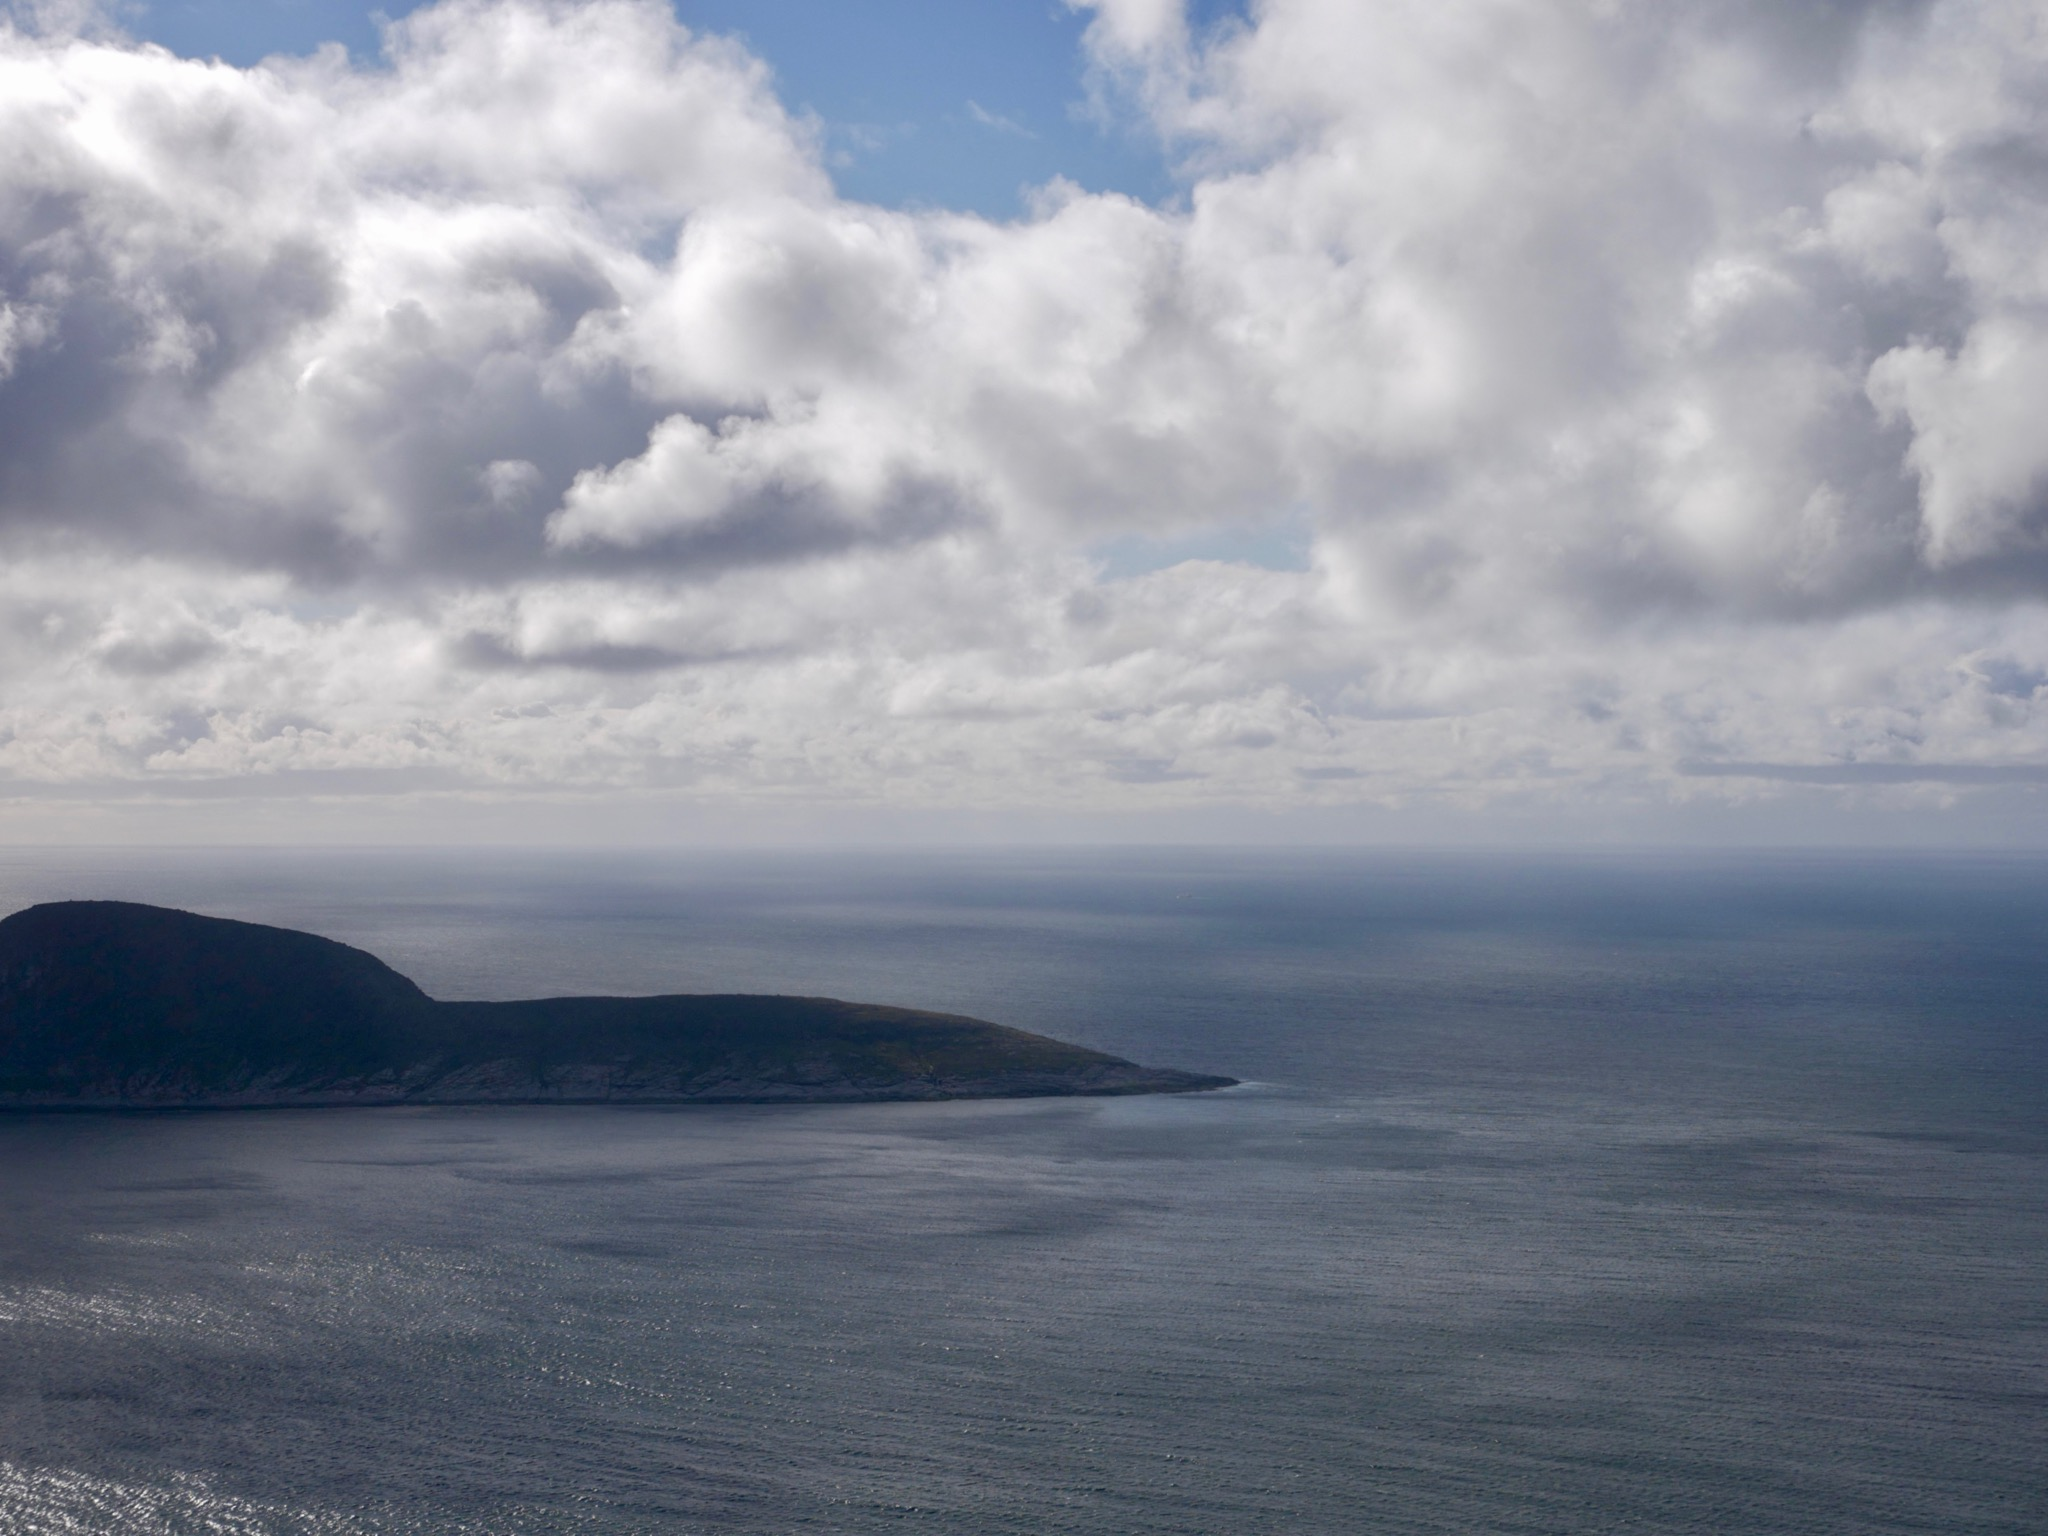 NorthCapeView - 3